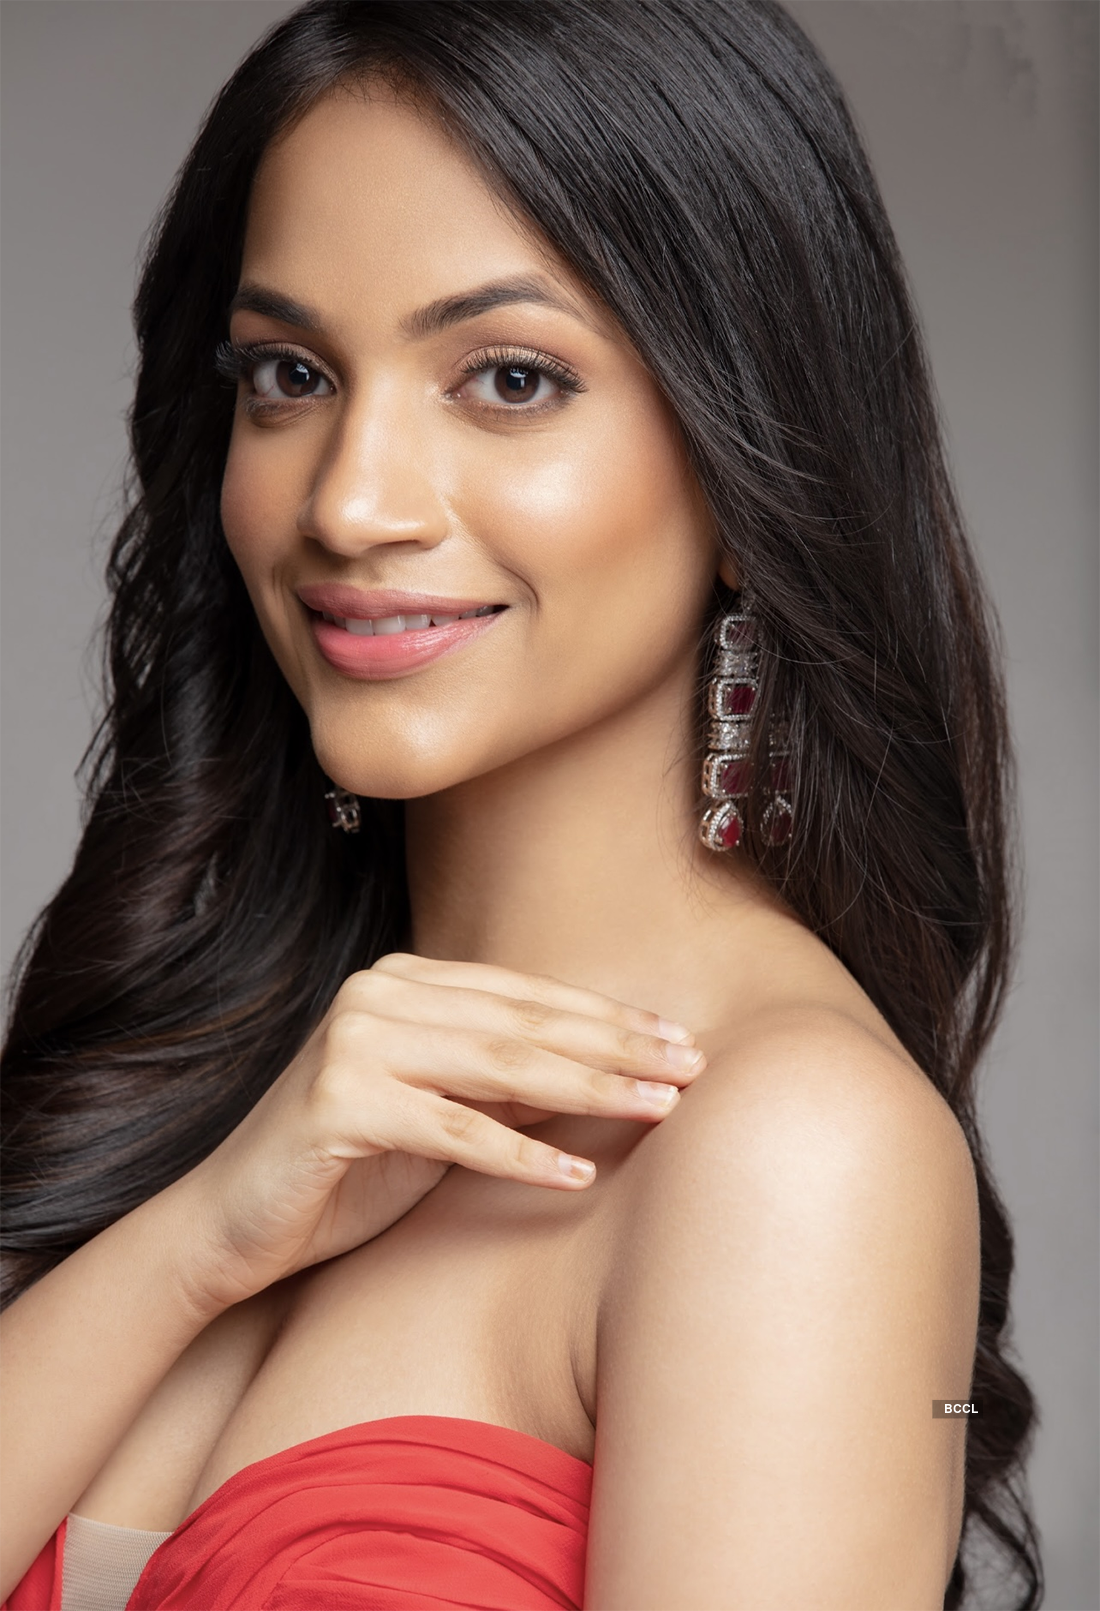 Pictures of Rashi Parasrampuria, the diva who'll represent India at Miss Teen International